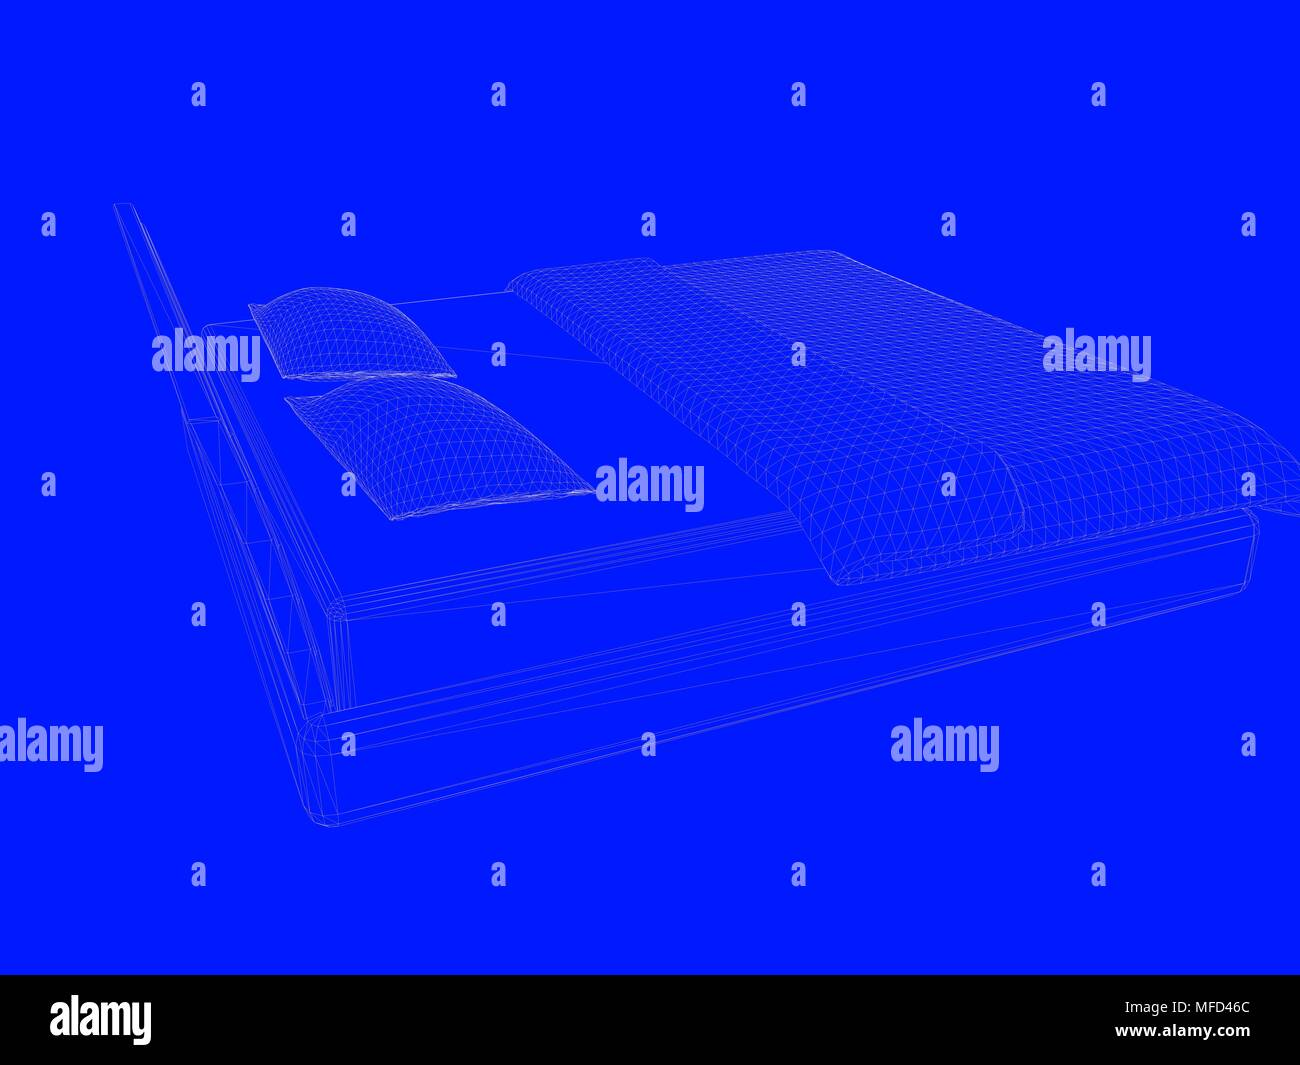 3d rendering of a bed blueprint as lines on a blue background stock 3d rendering of a bed blueprint as lines on a blue background malvernweather Choice Image